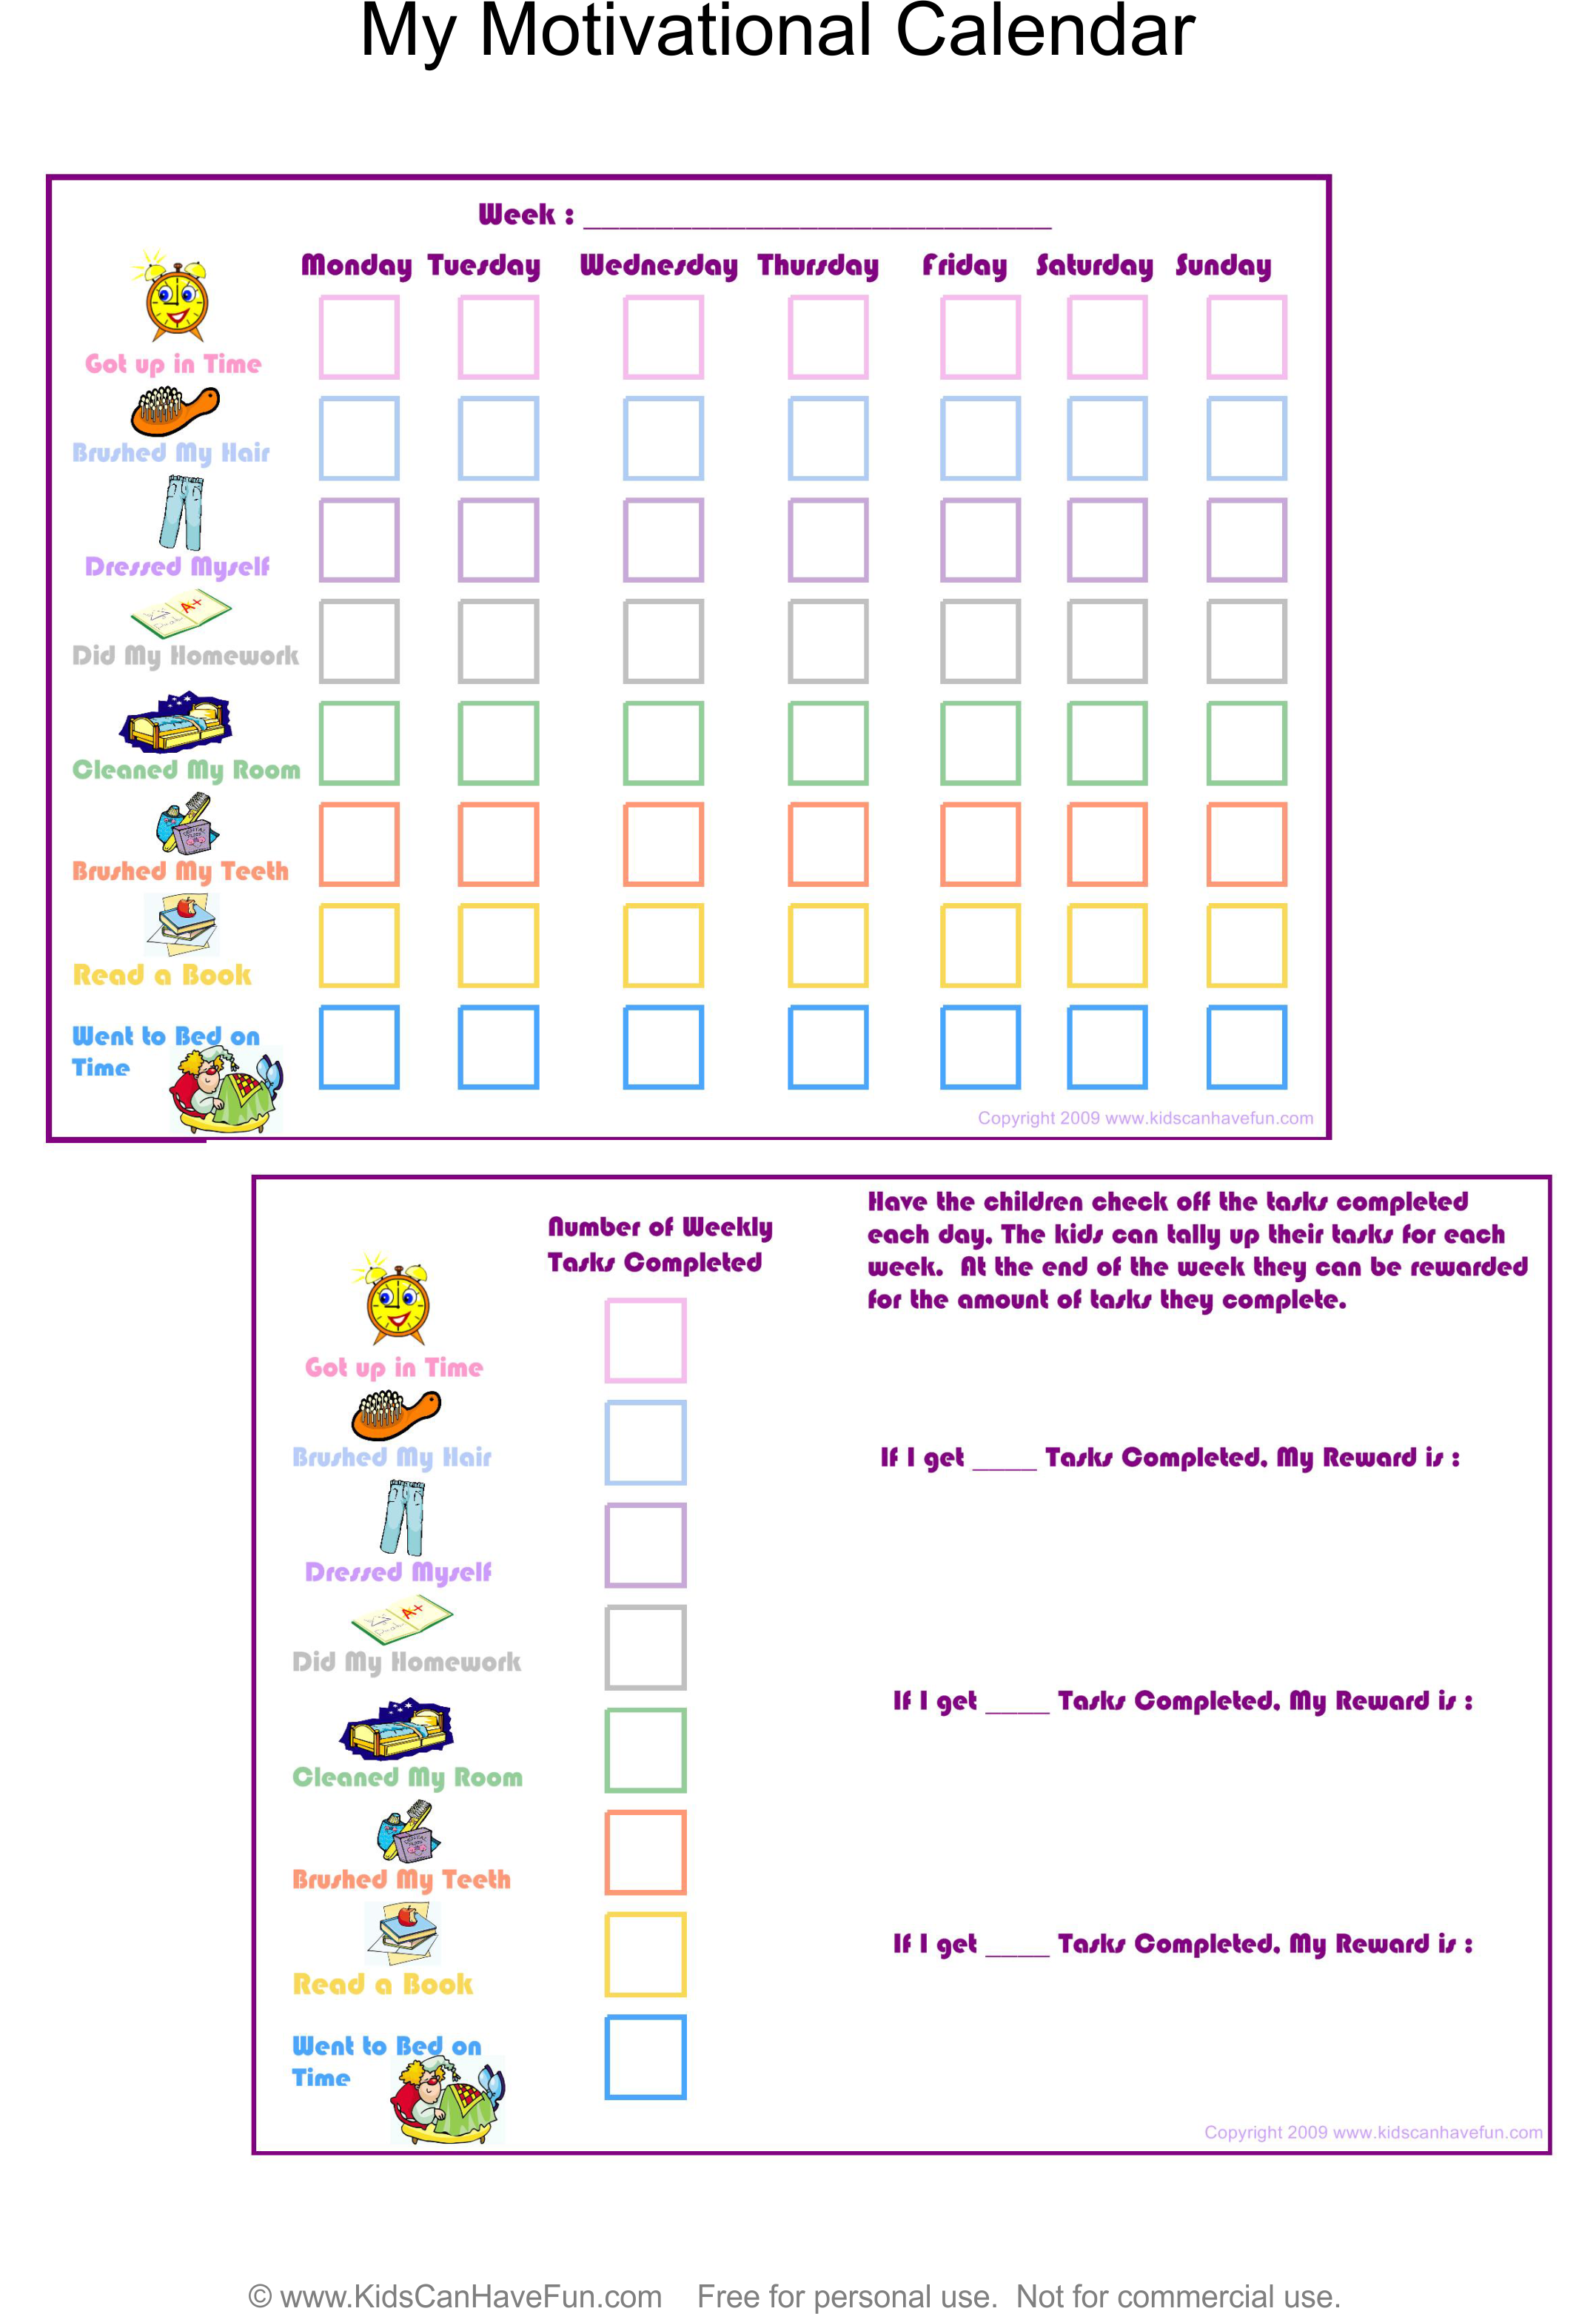 My Motivational Calendar for kids to complete their tasks http://www ...